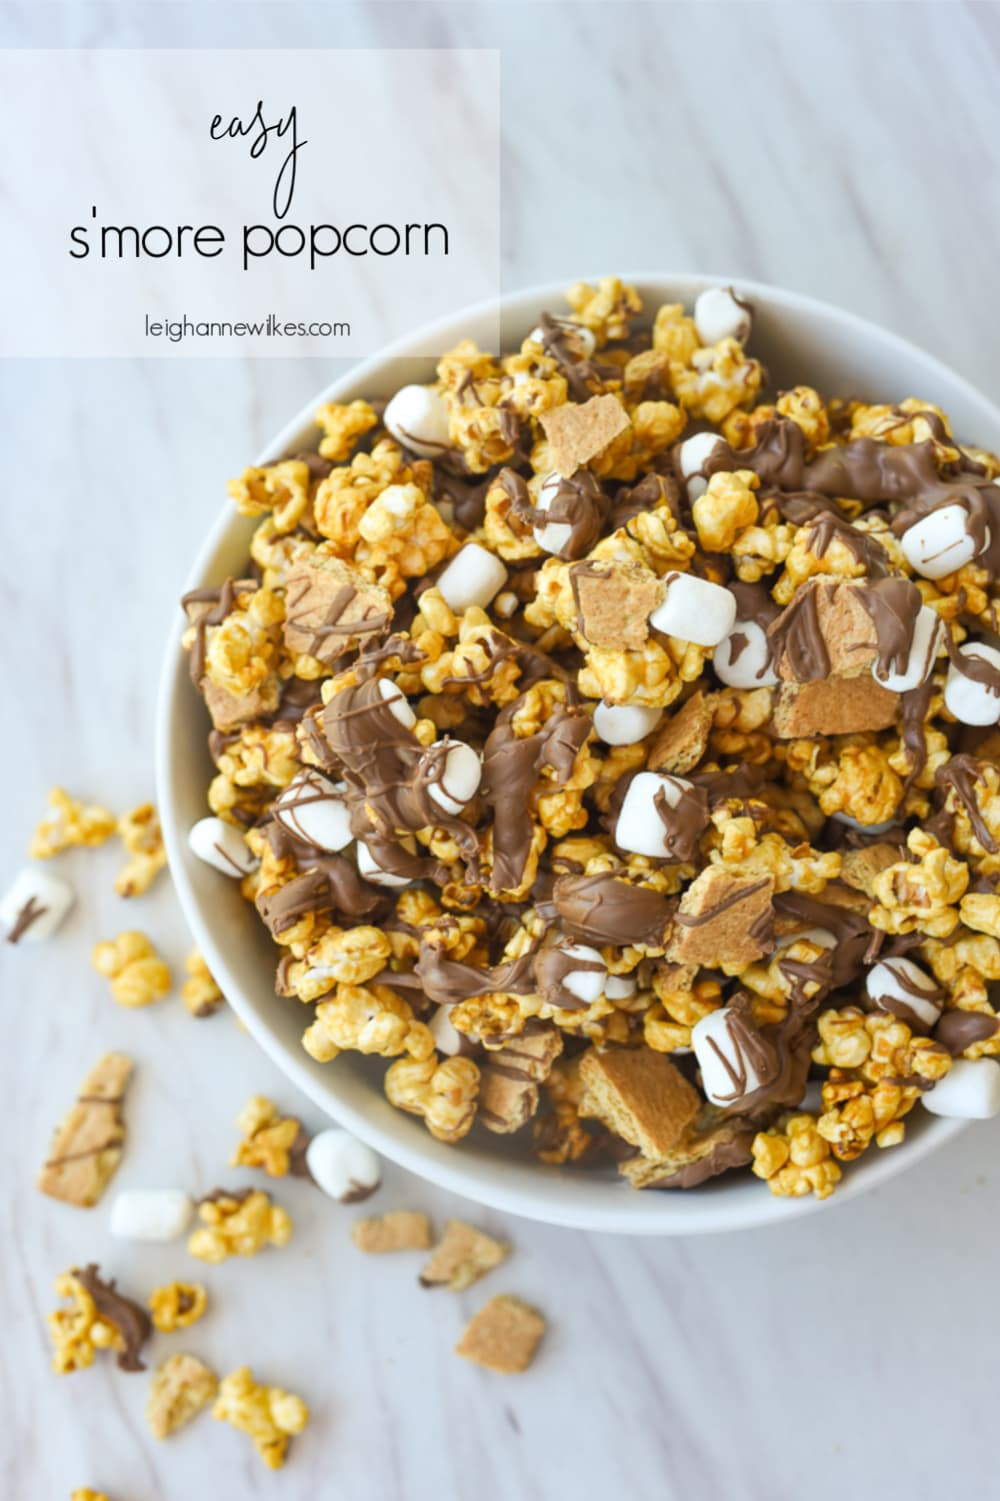 s'more popcorn in a white bowl